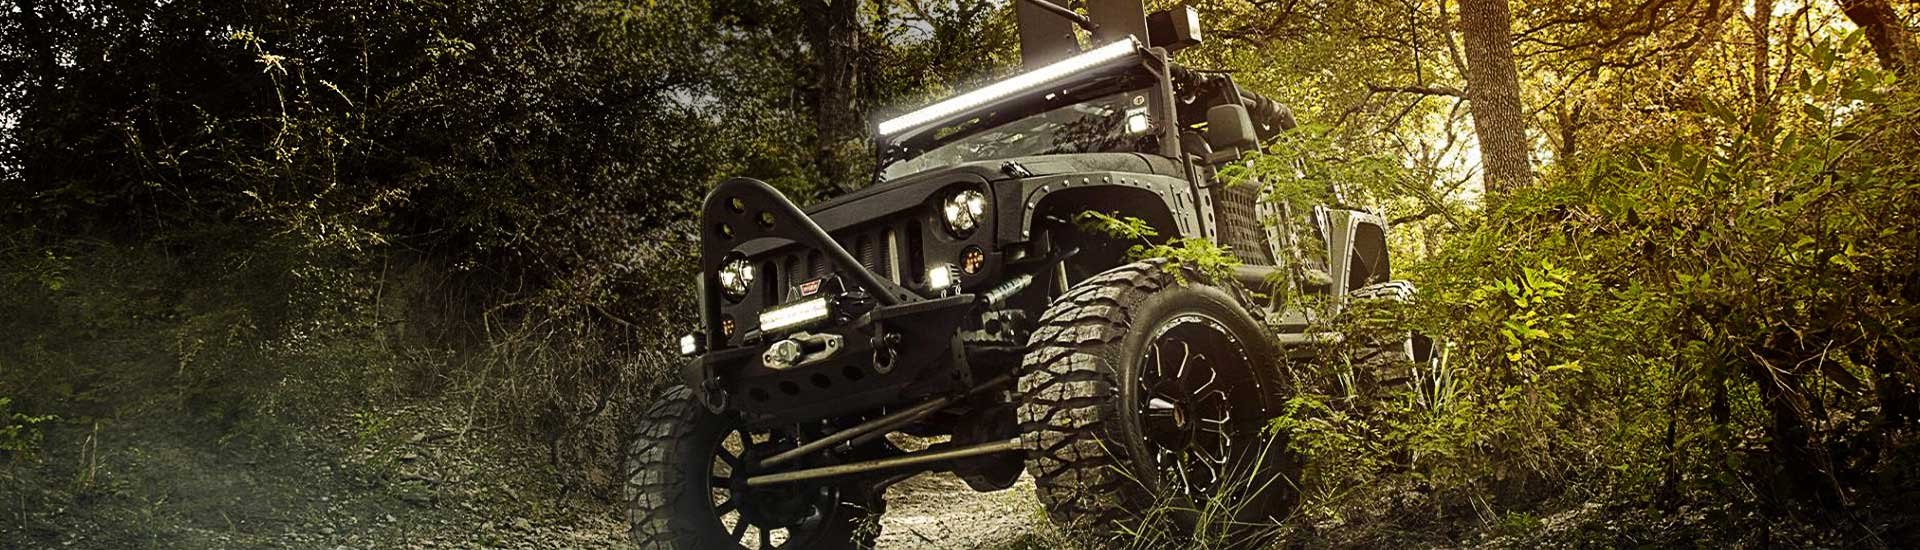 largest flares bushwacker disposition jeep plus autosport fender accesskeyid lund selection accessories by s of ohio alloworigin and from in the canton truck area egr